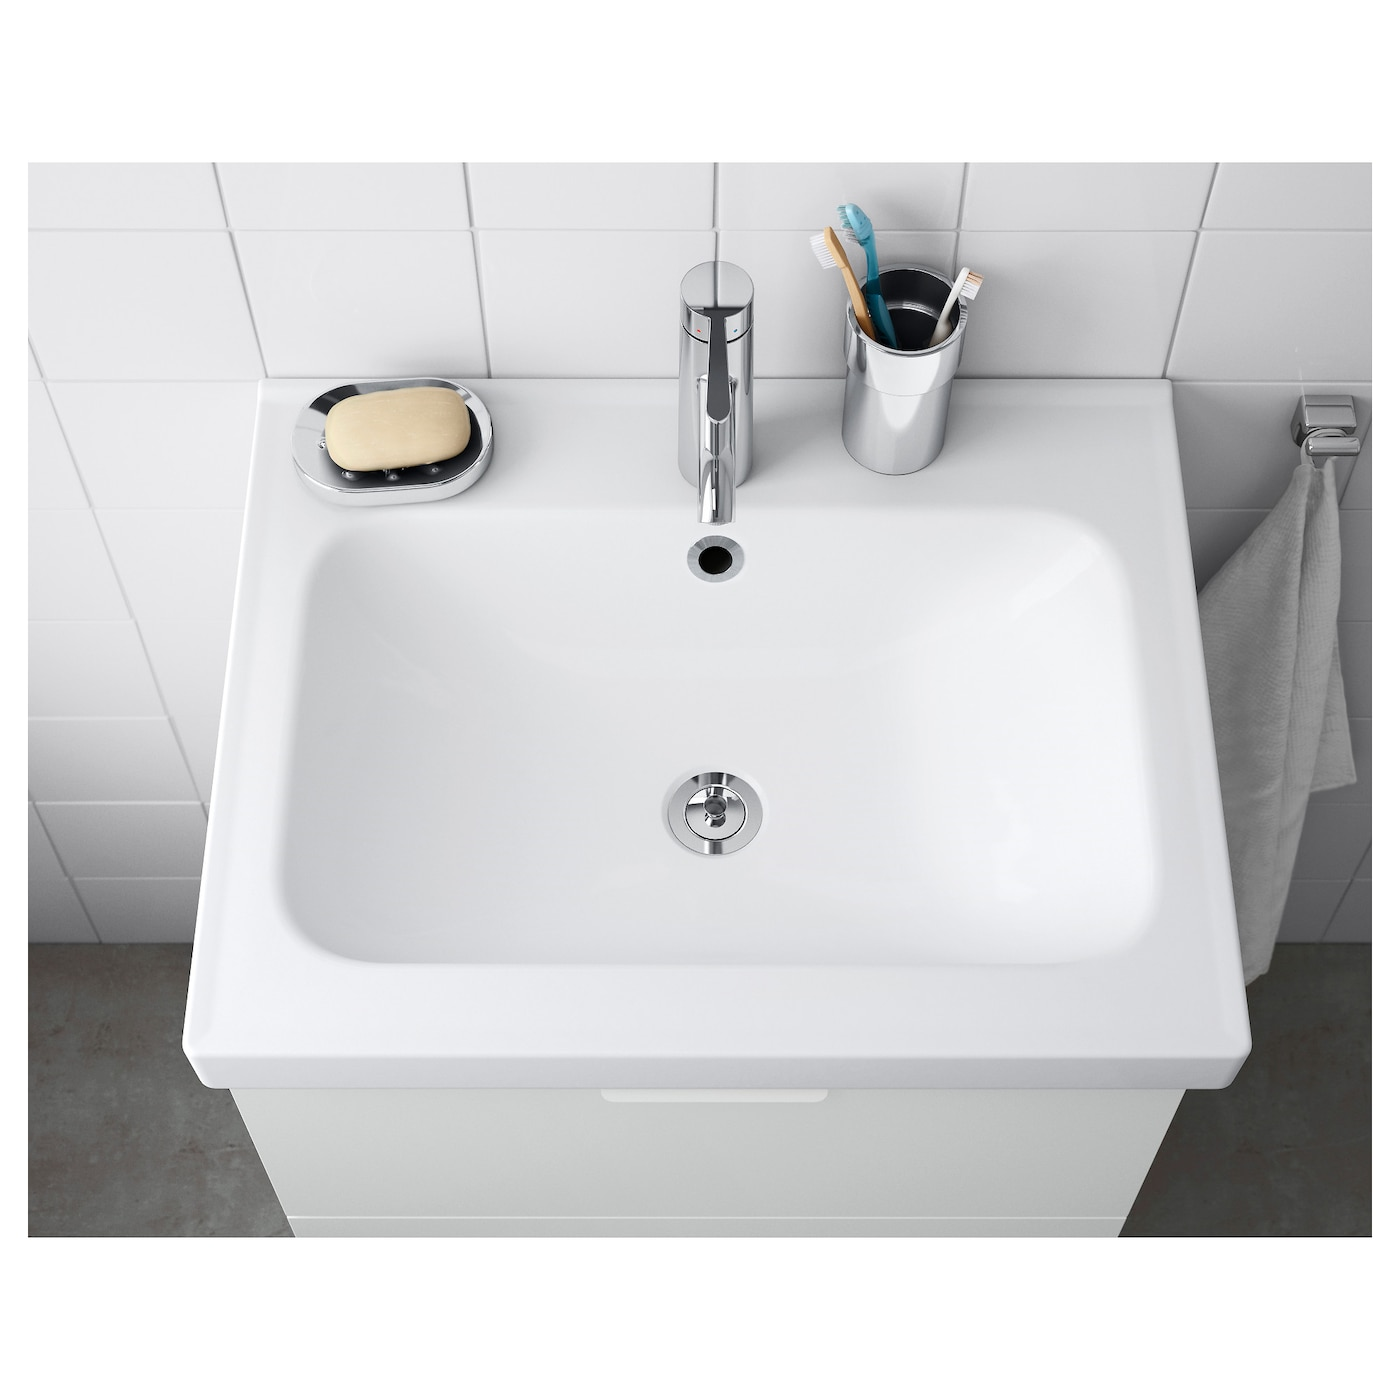 Odensvik single wash basin 60x49x6 cm ikea for Ikea lavabo